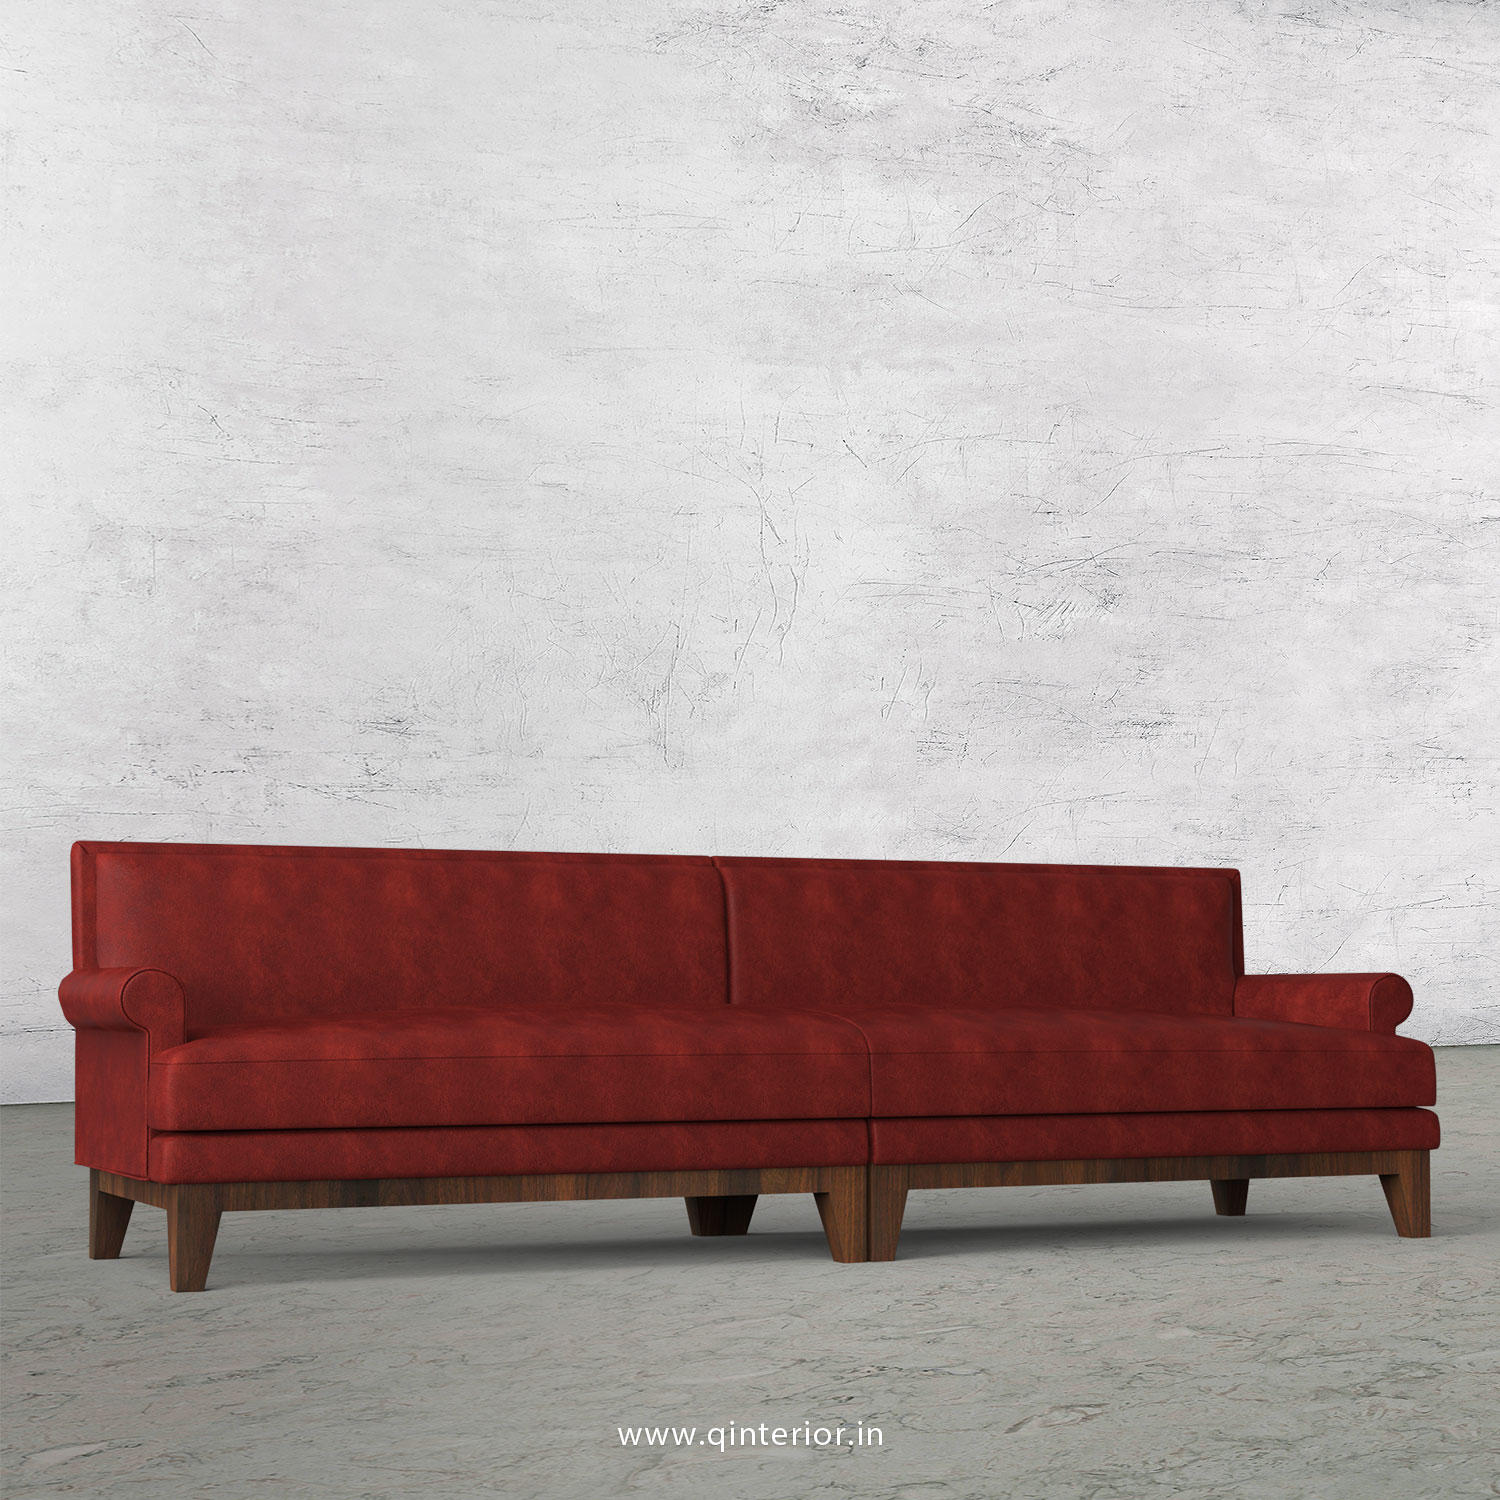 Aviana 4 Seater Sofa in Fab Leather Fabric - SFA001 FL17